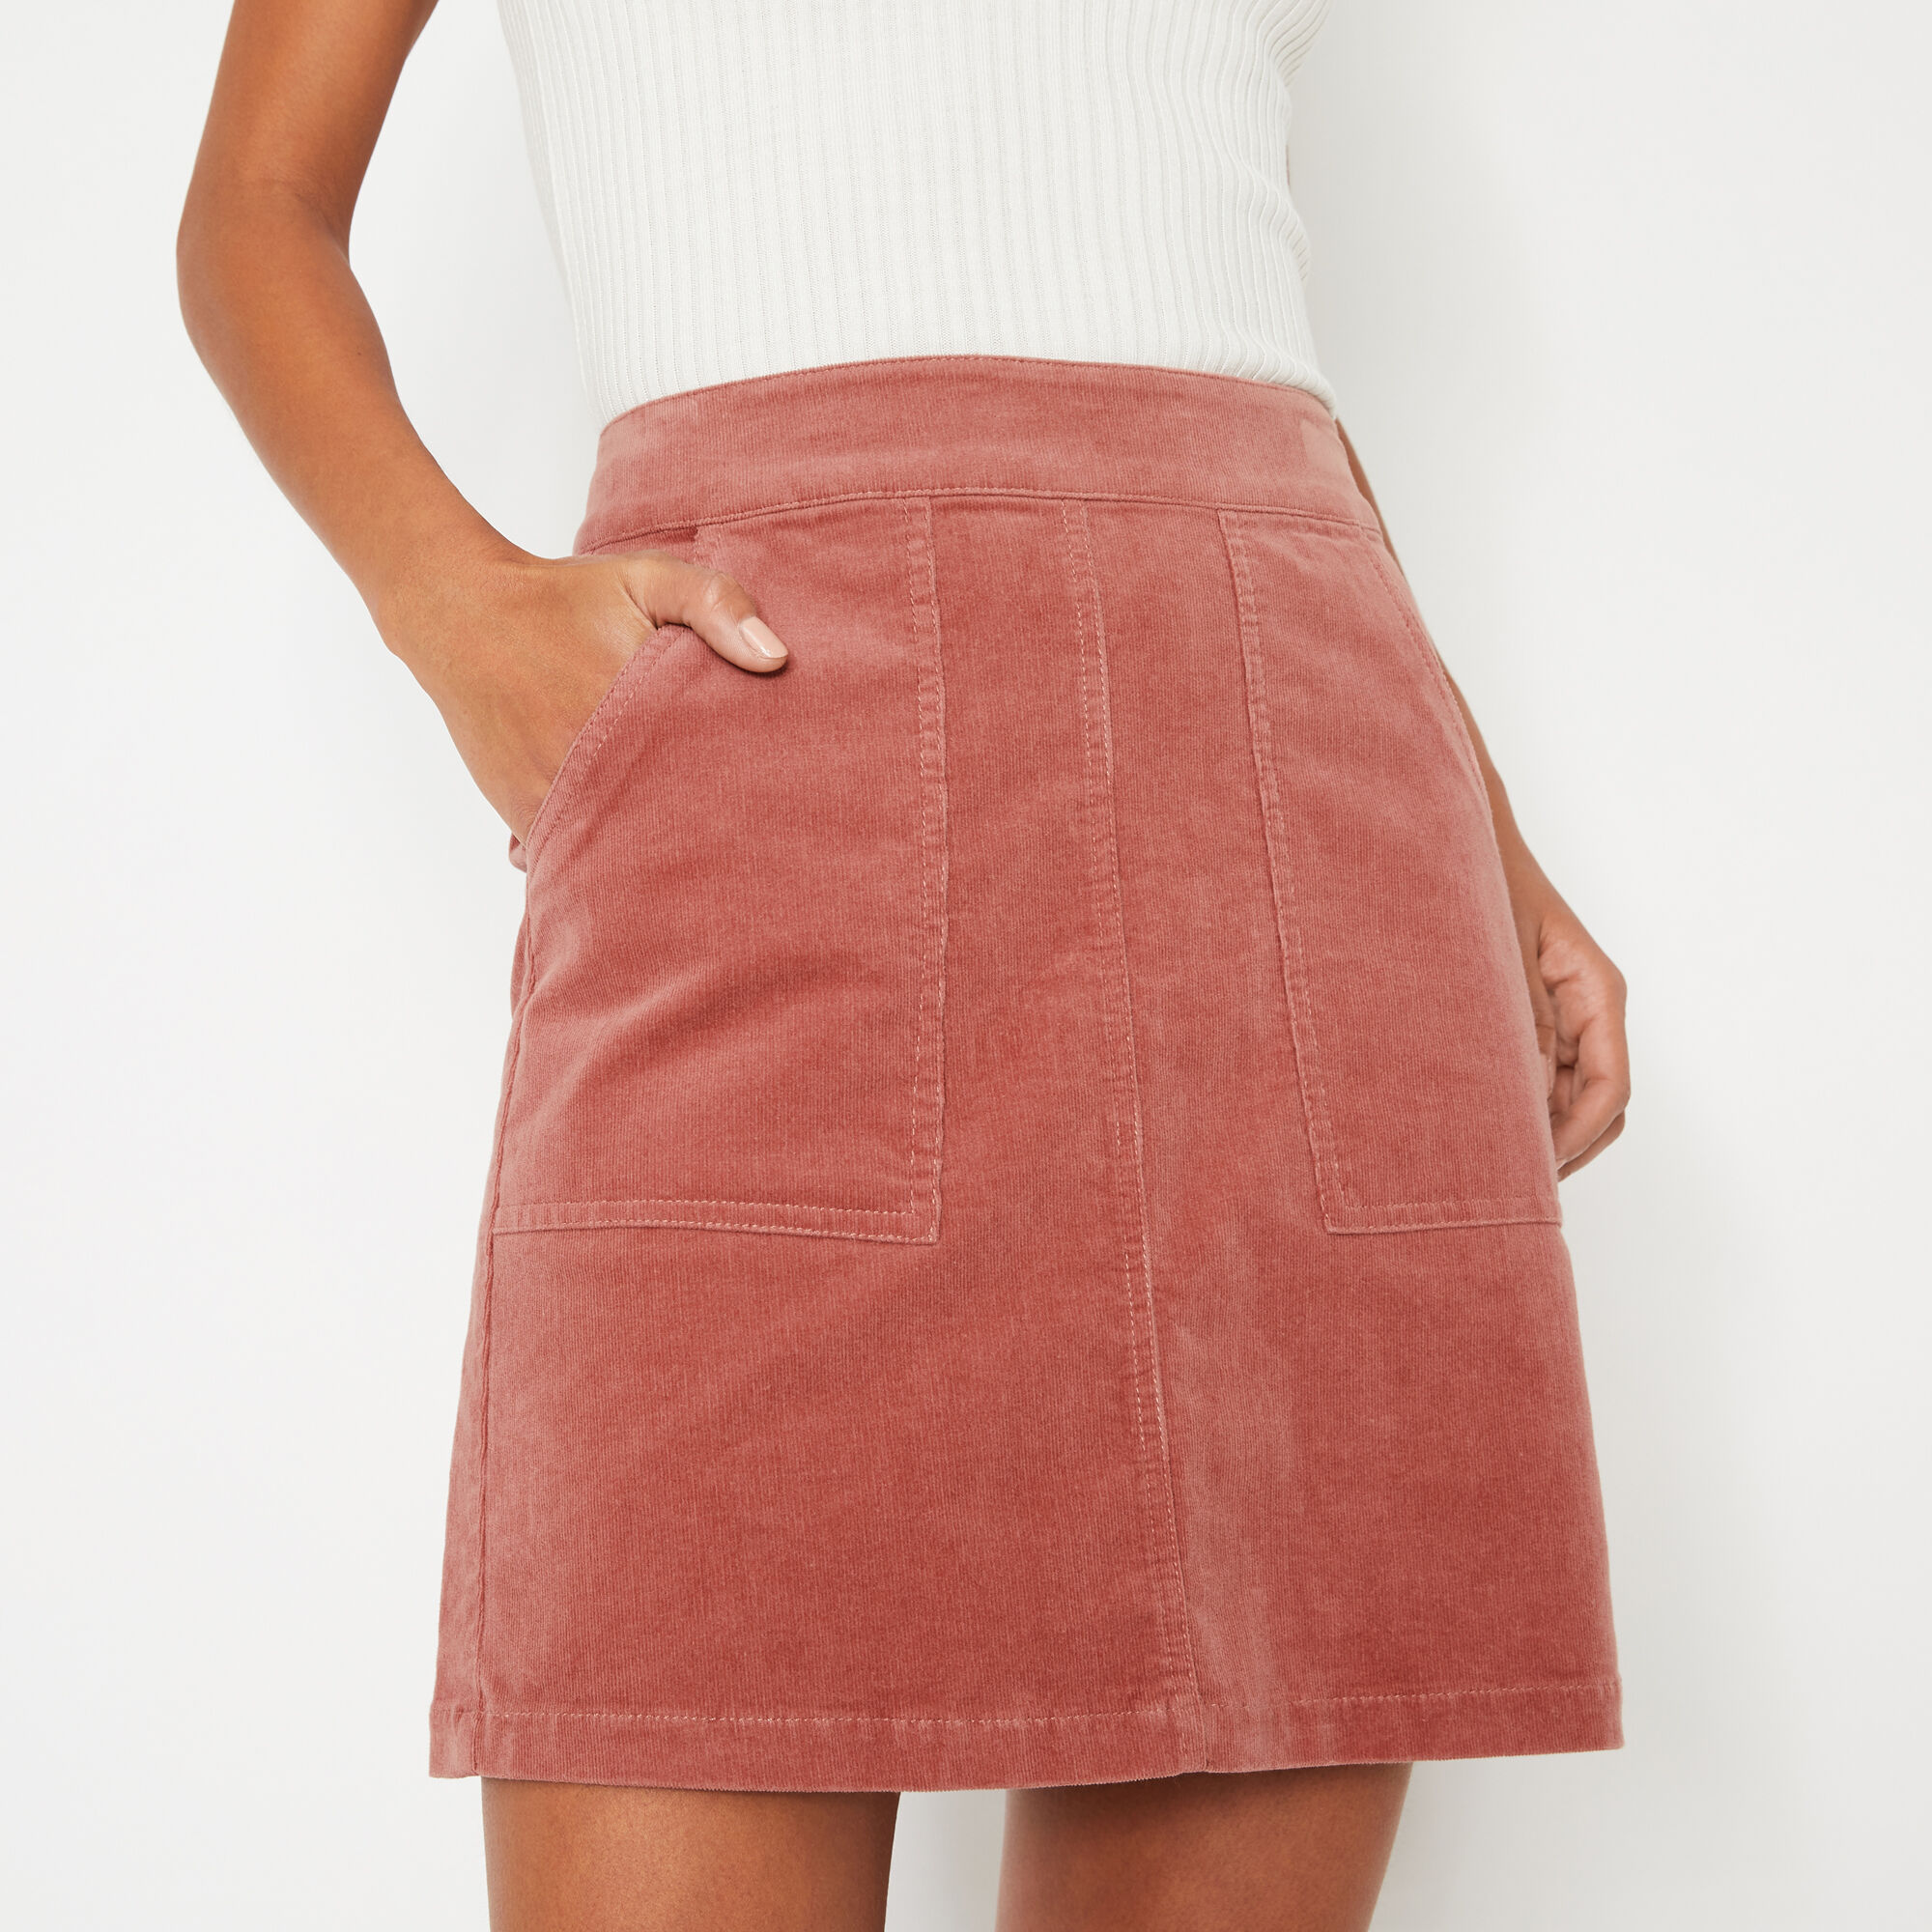 Warehouse, CORD PATCH POCKET MINI SKIRT Light Pink 1